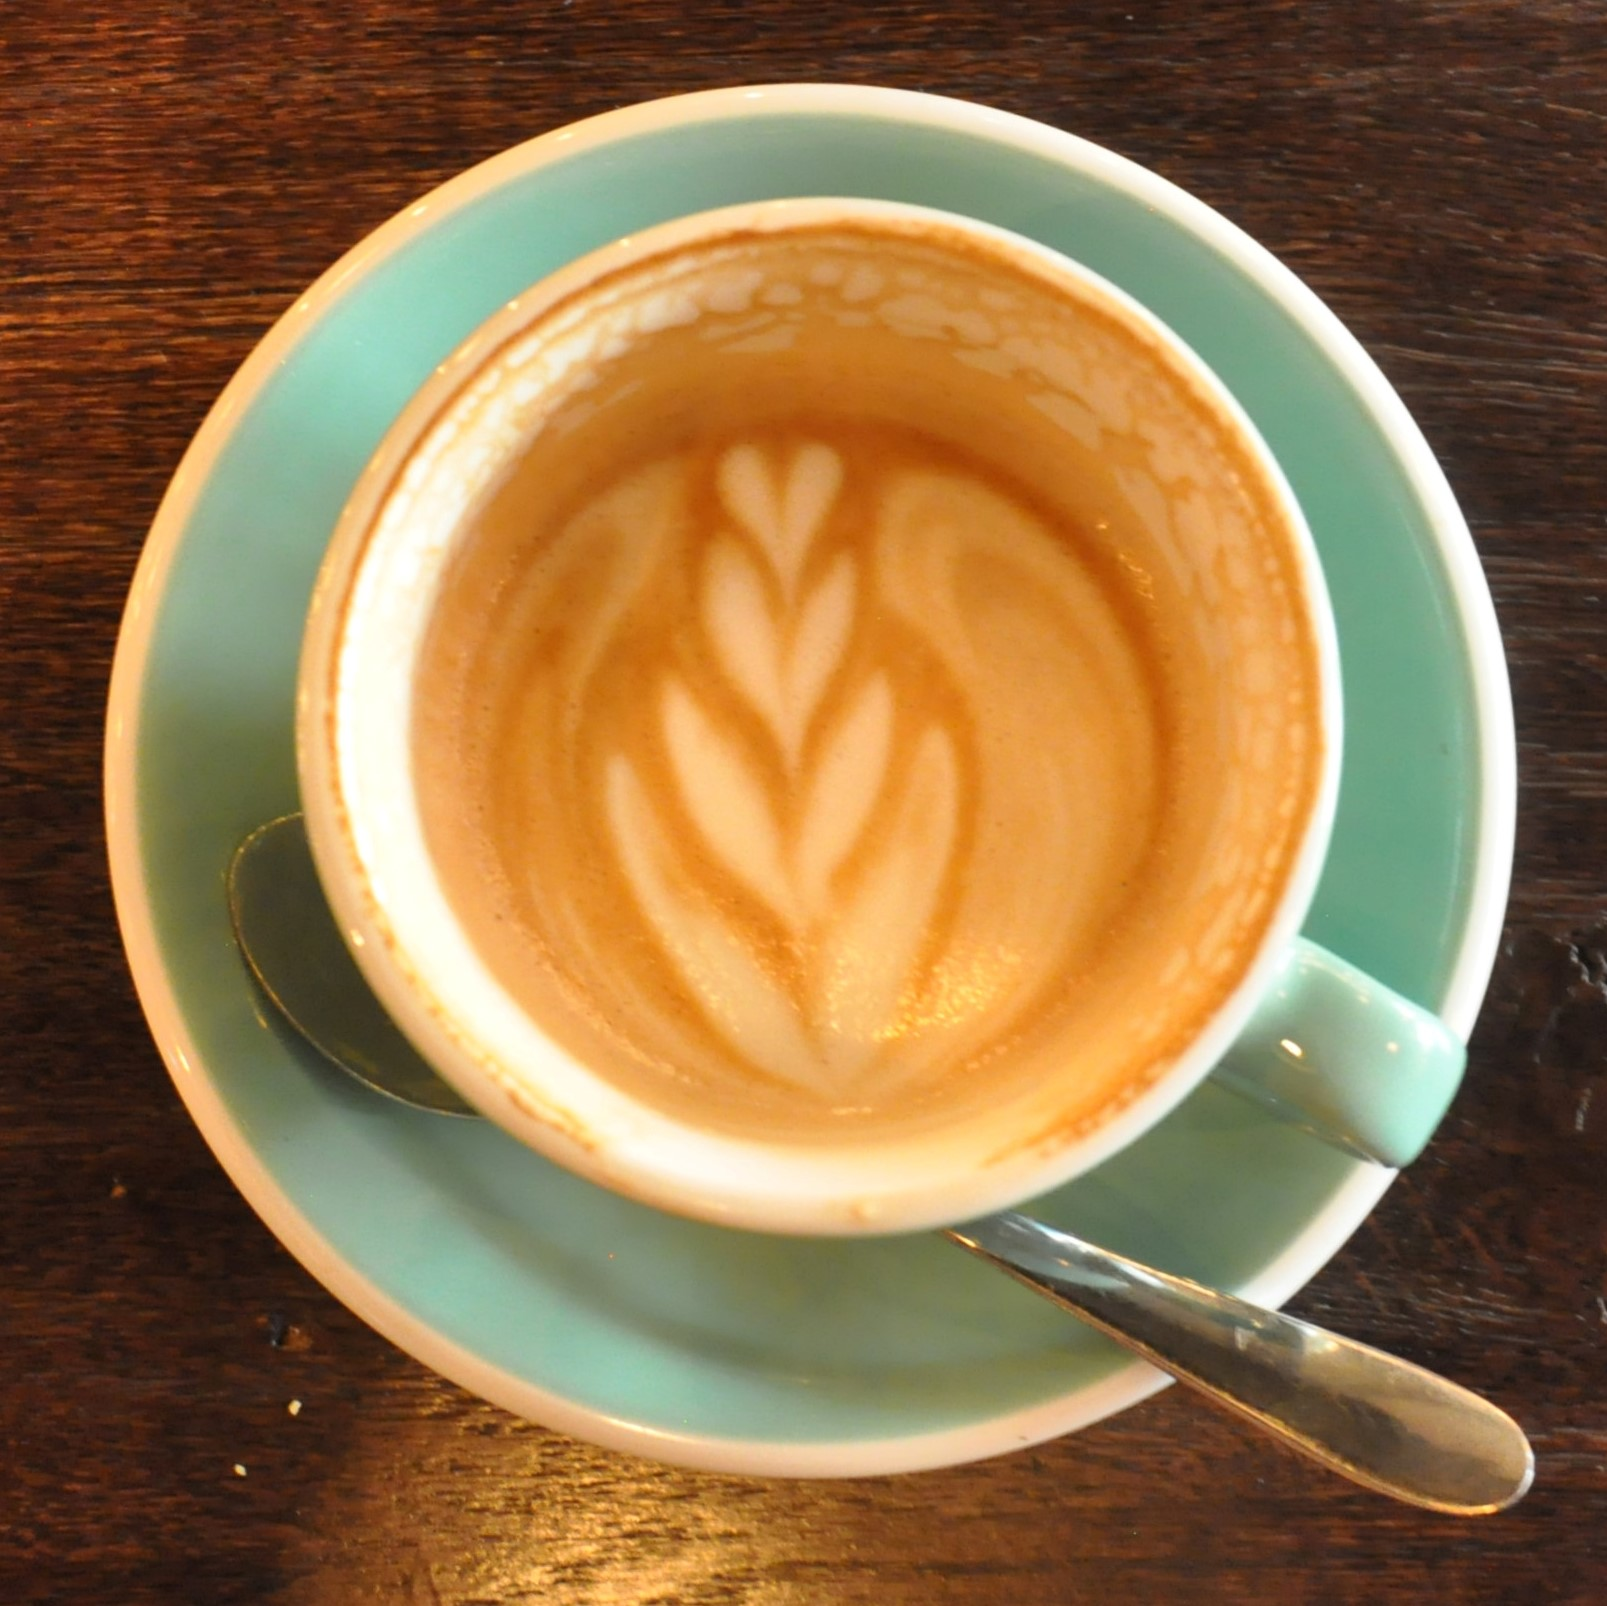 A decaf flat white at the Cardiff branch of 200 Degrees. The latte art pattern in the milk is still visible when half the coffee has been drunk.